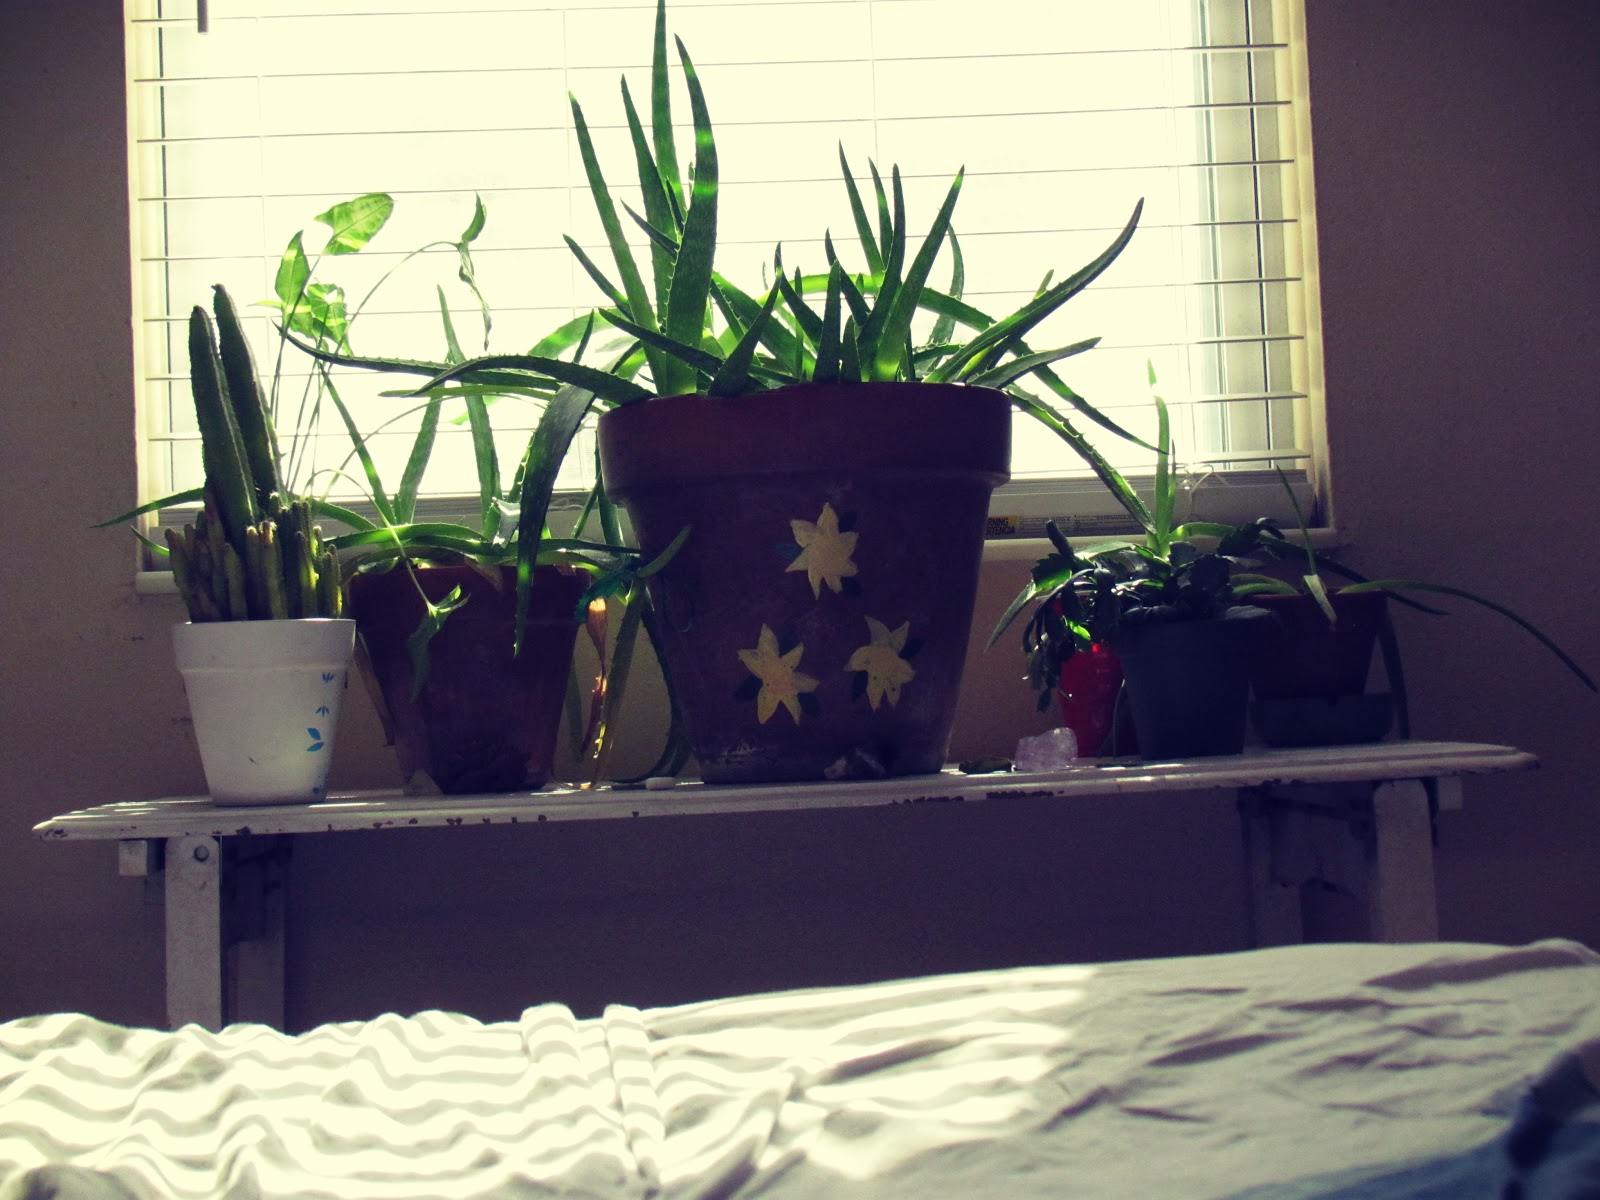 Green Thriving Plant Life on a White Plant Table in Nature + Bedroom Houseplants